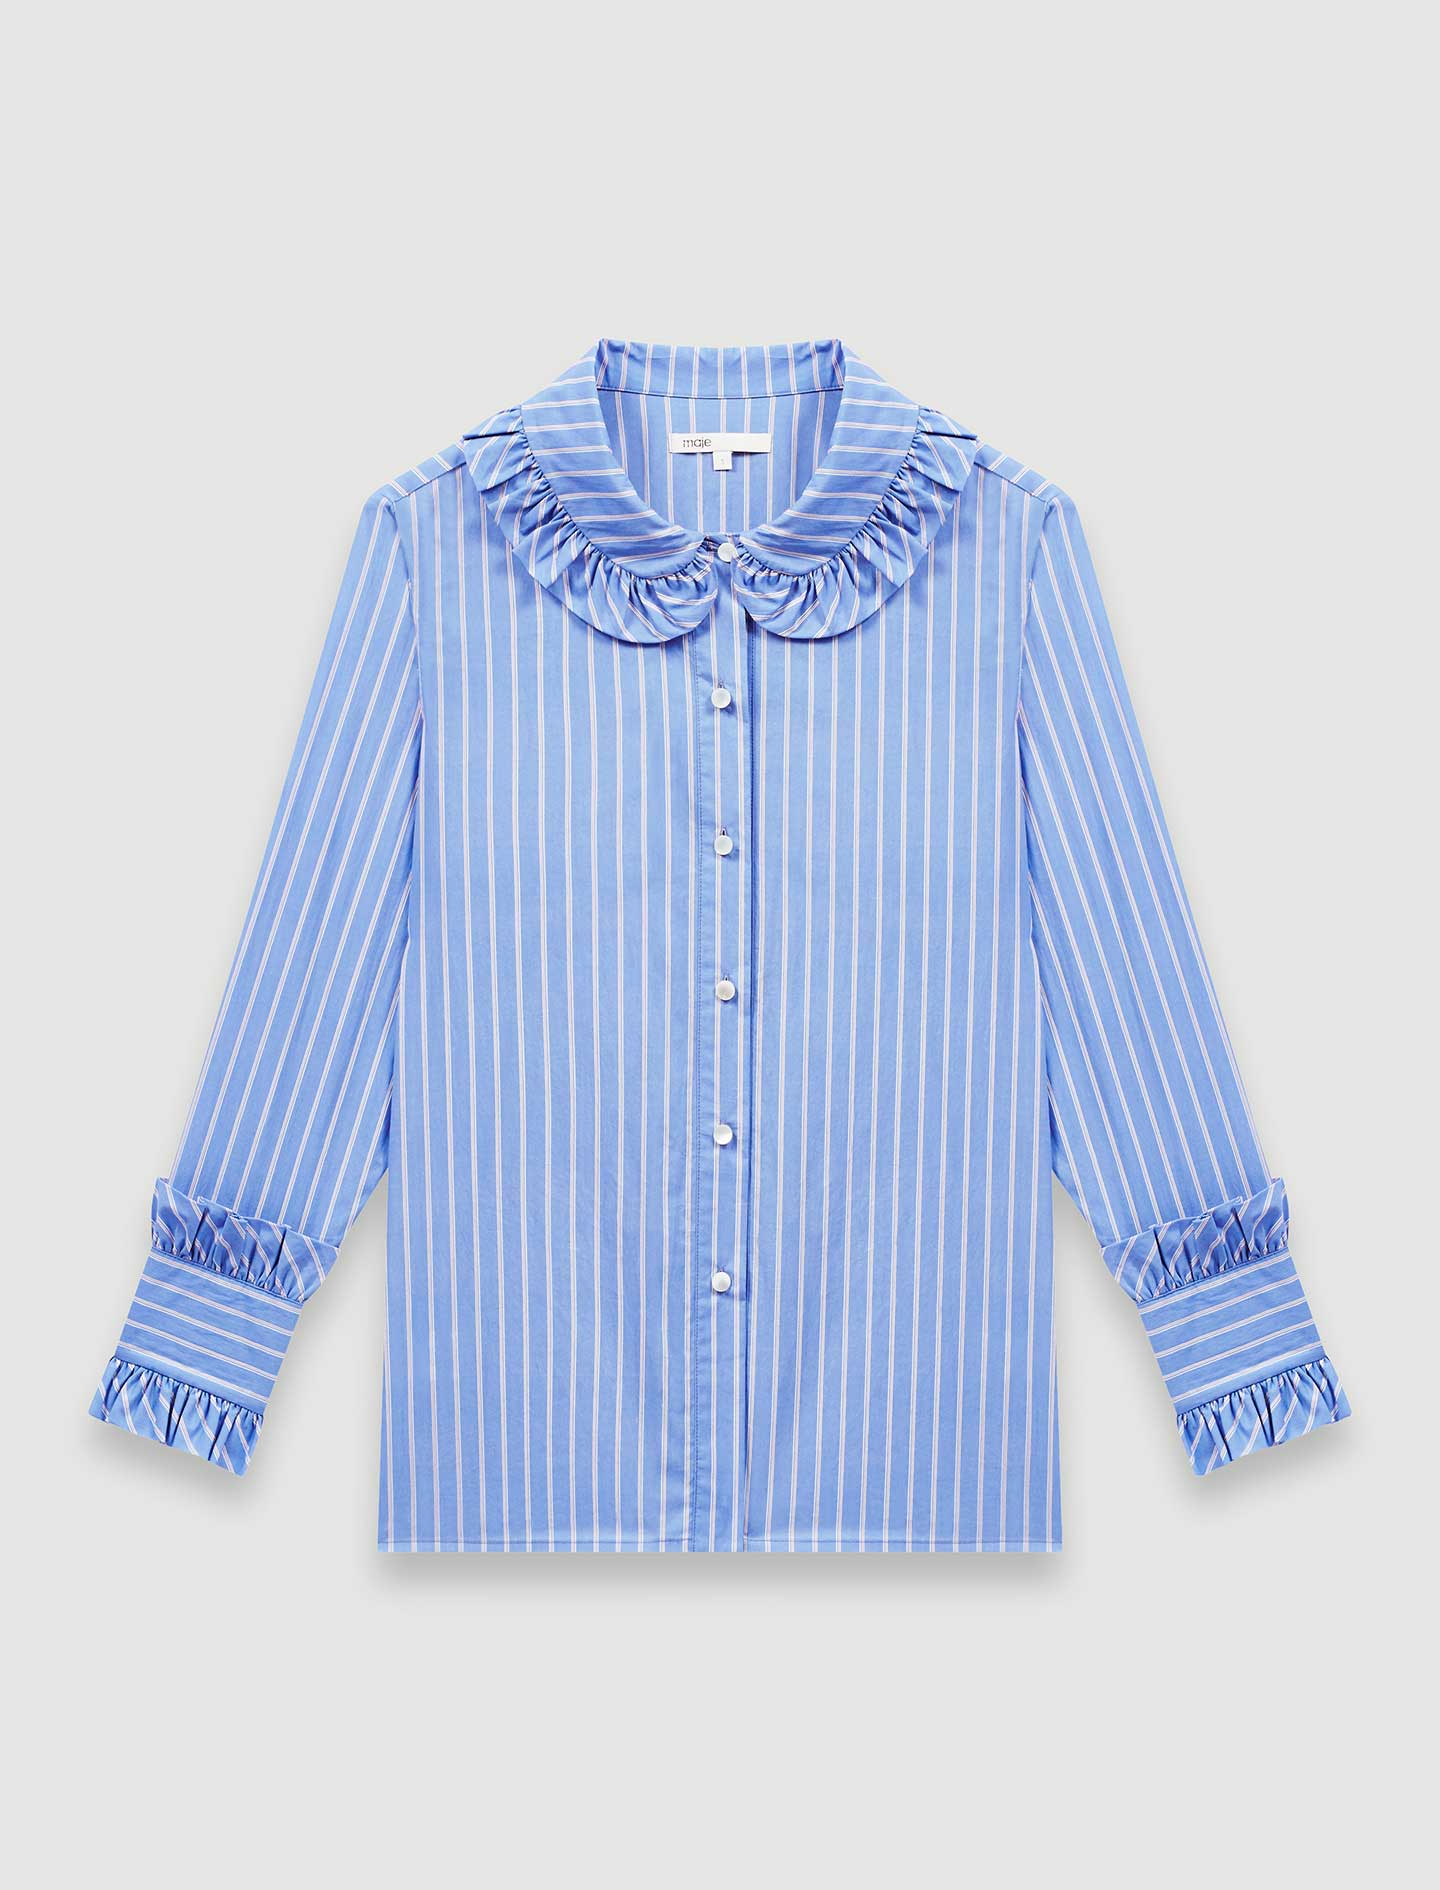 Striped shirt with a frilled collar - Blue